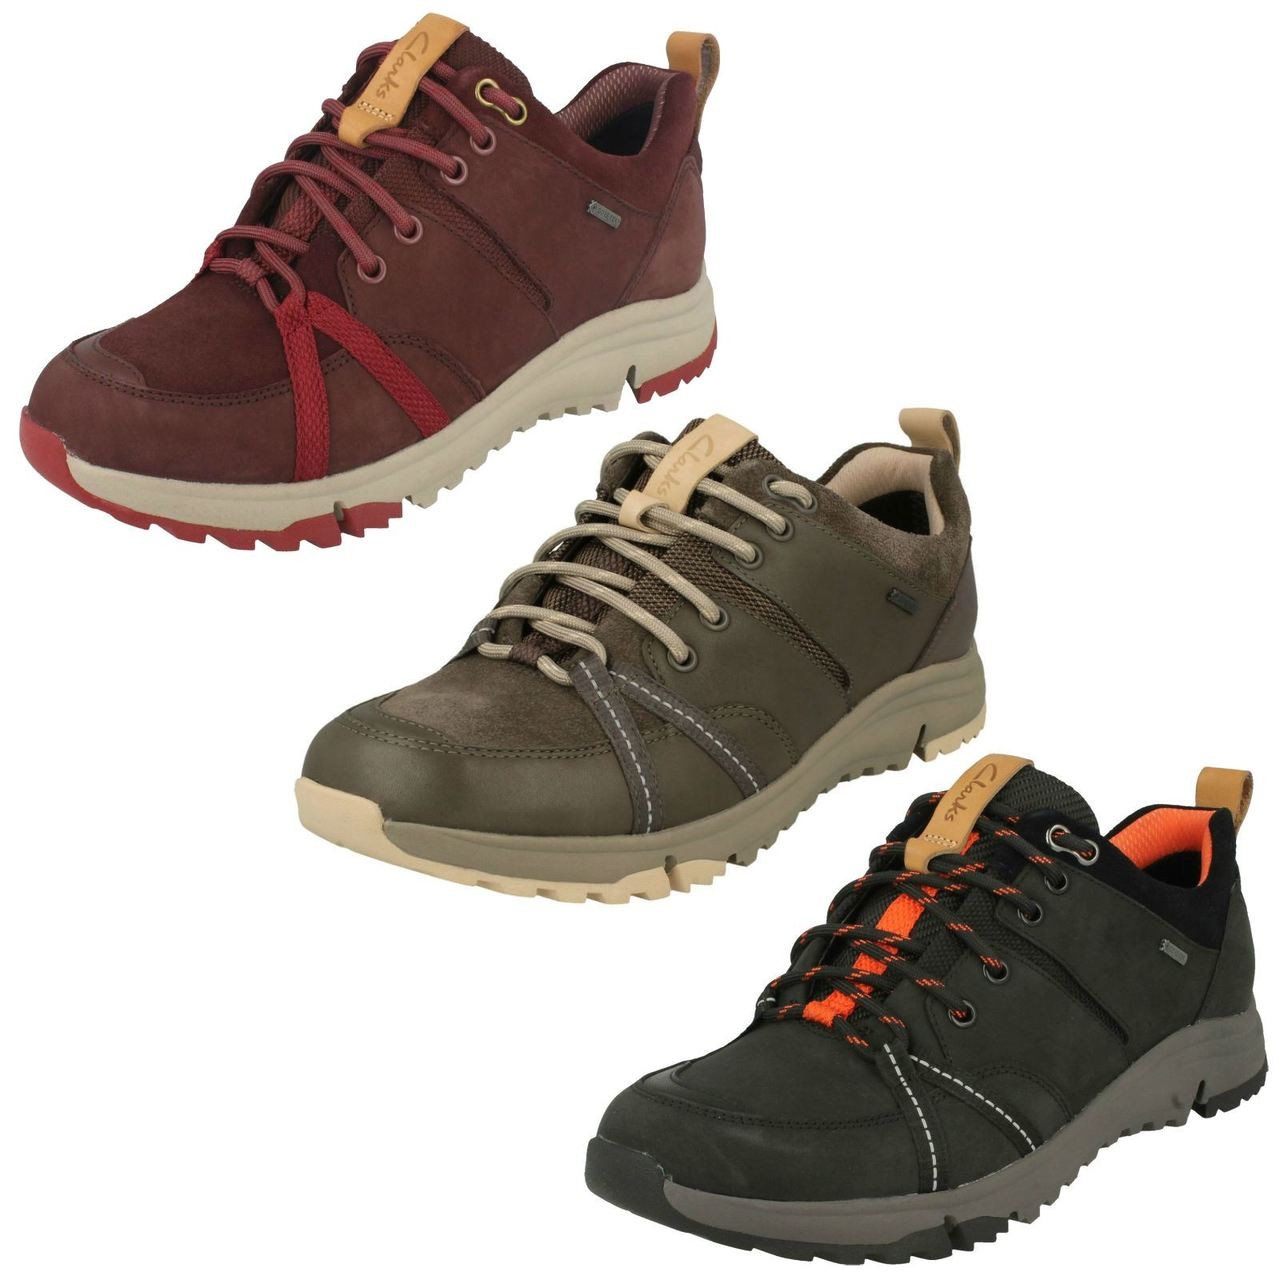 Ladies Clarks Trainer Style Shoes Tri